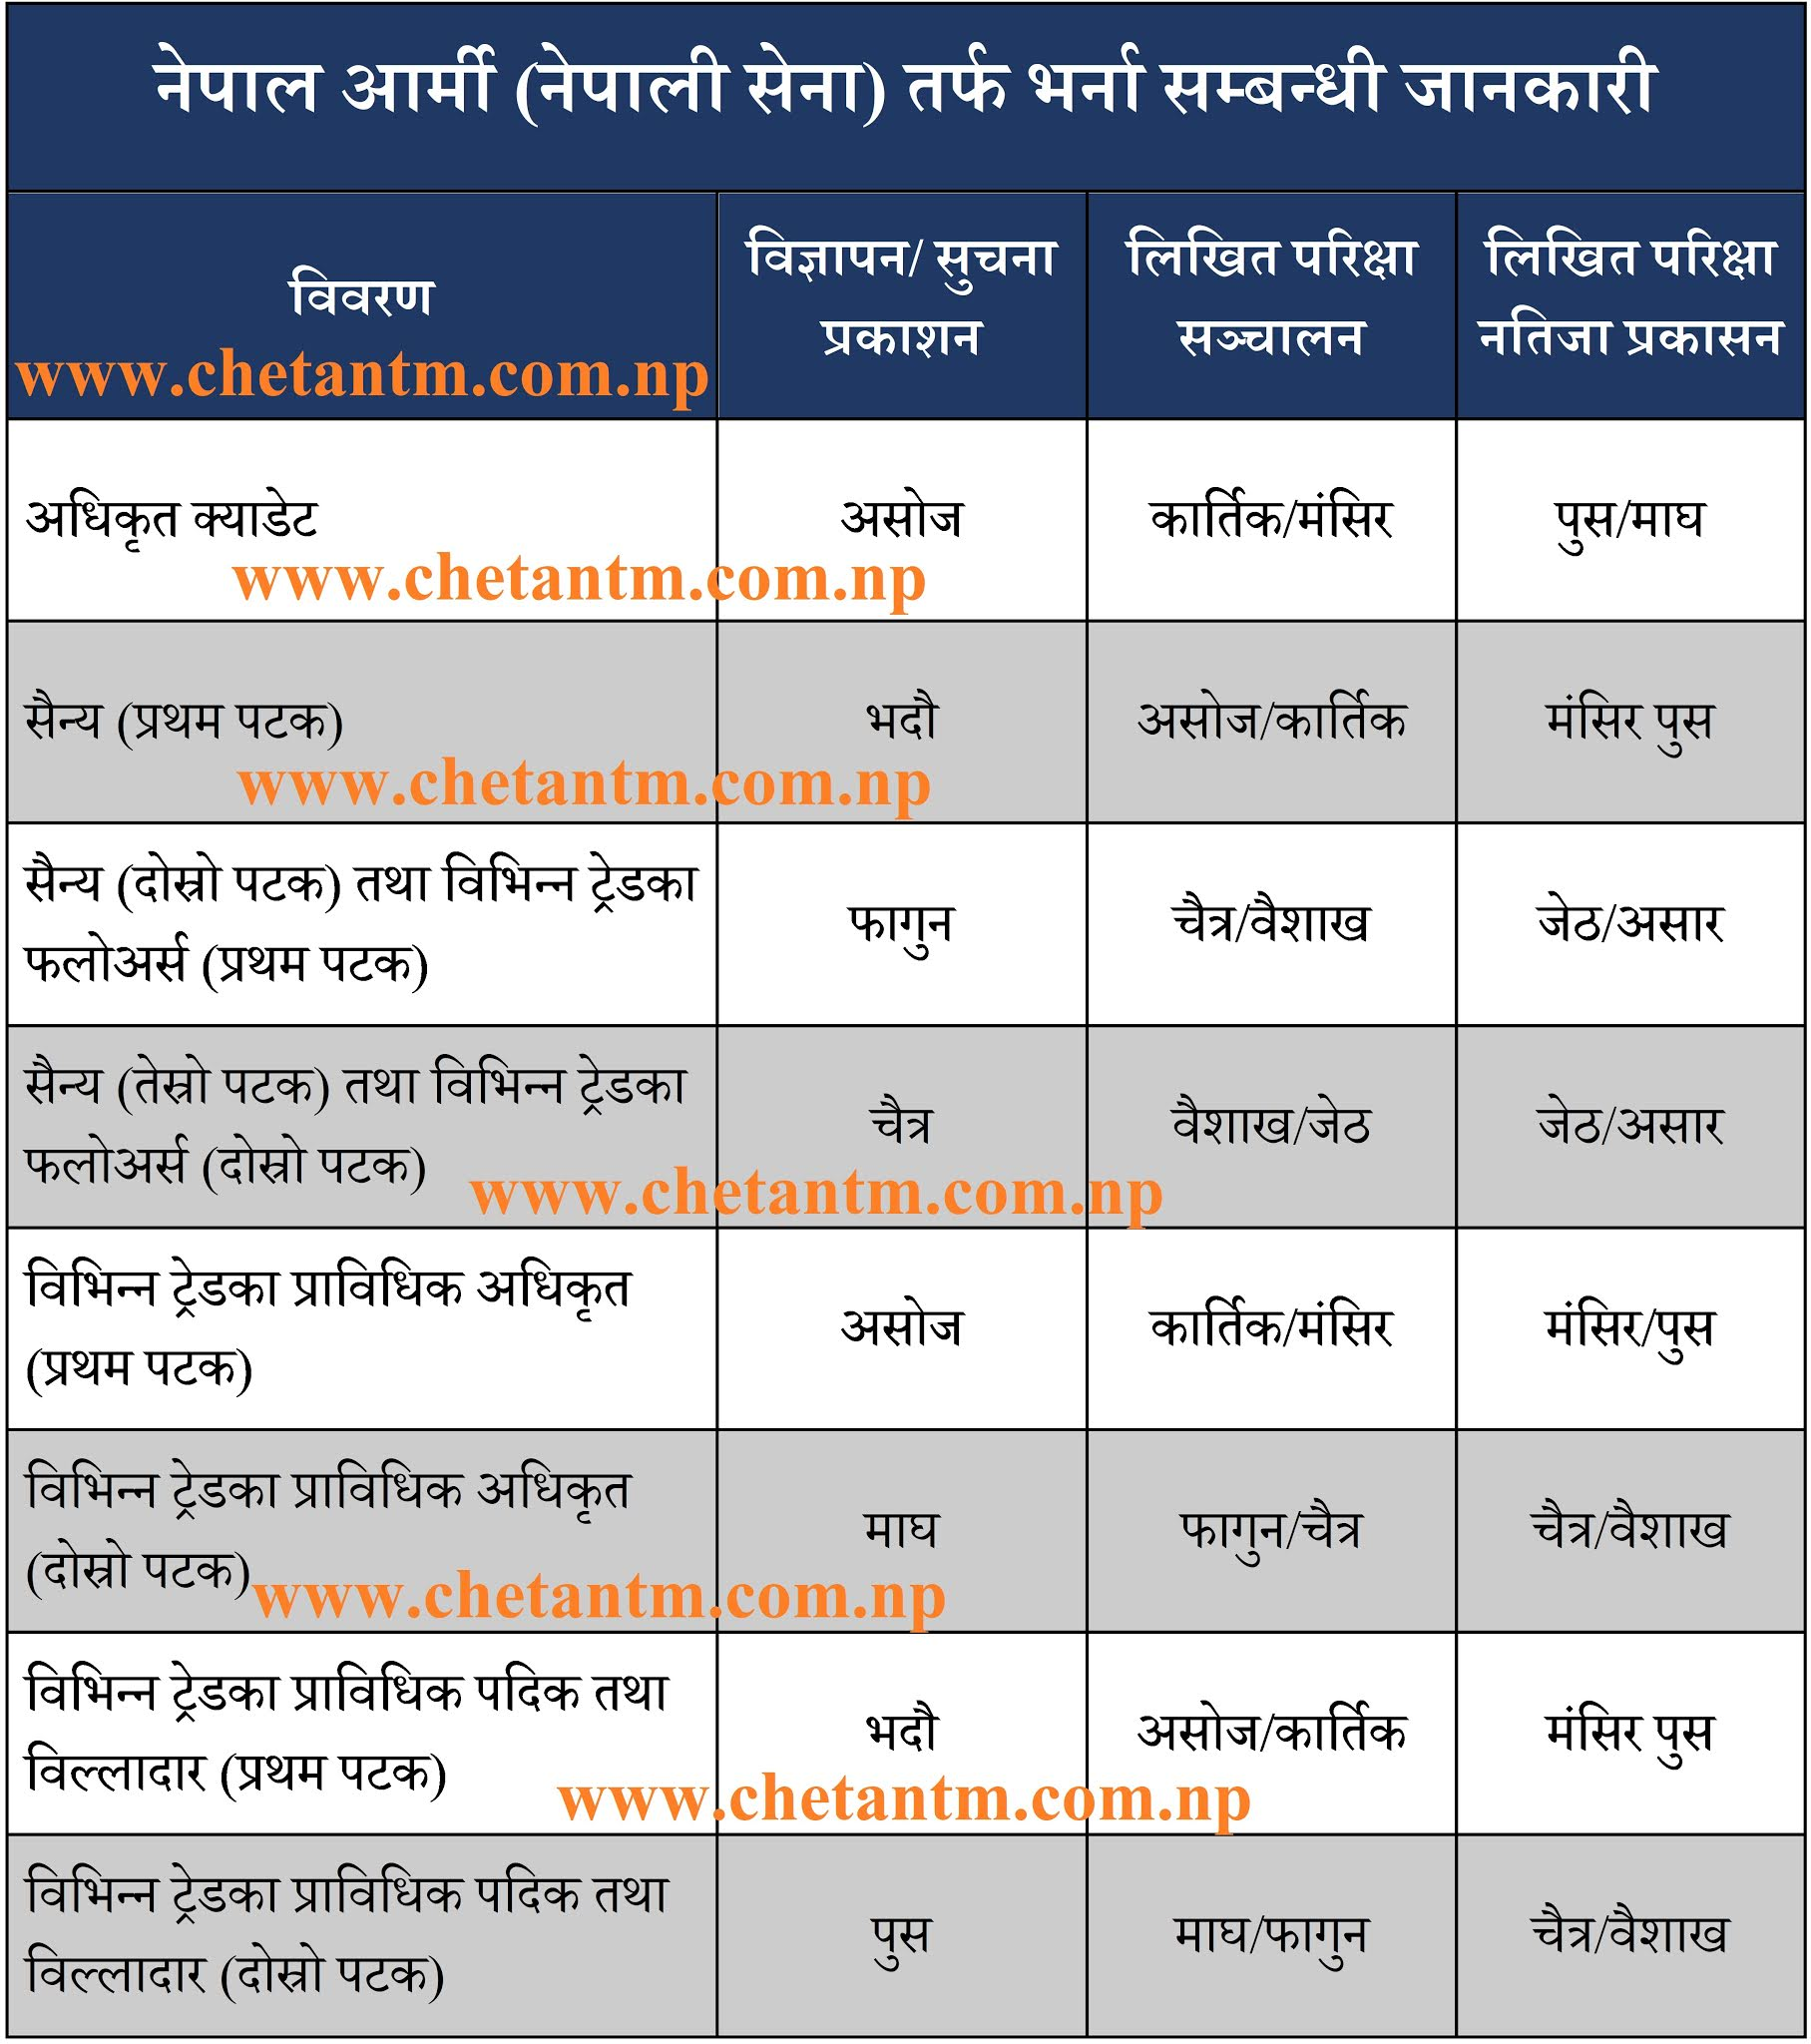 Nepal Army New Vacancy Details (2078/79)